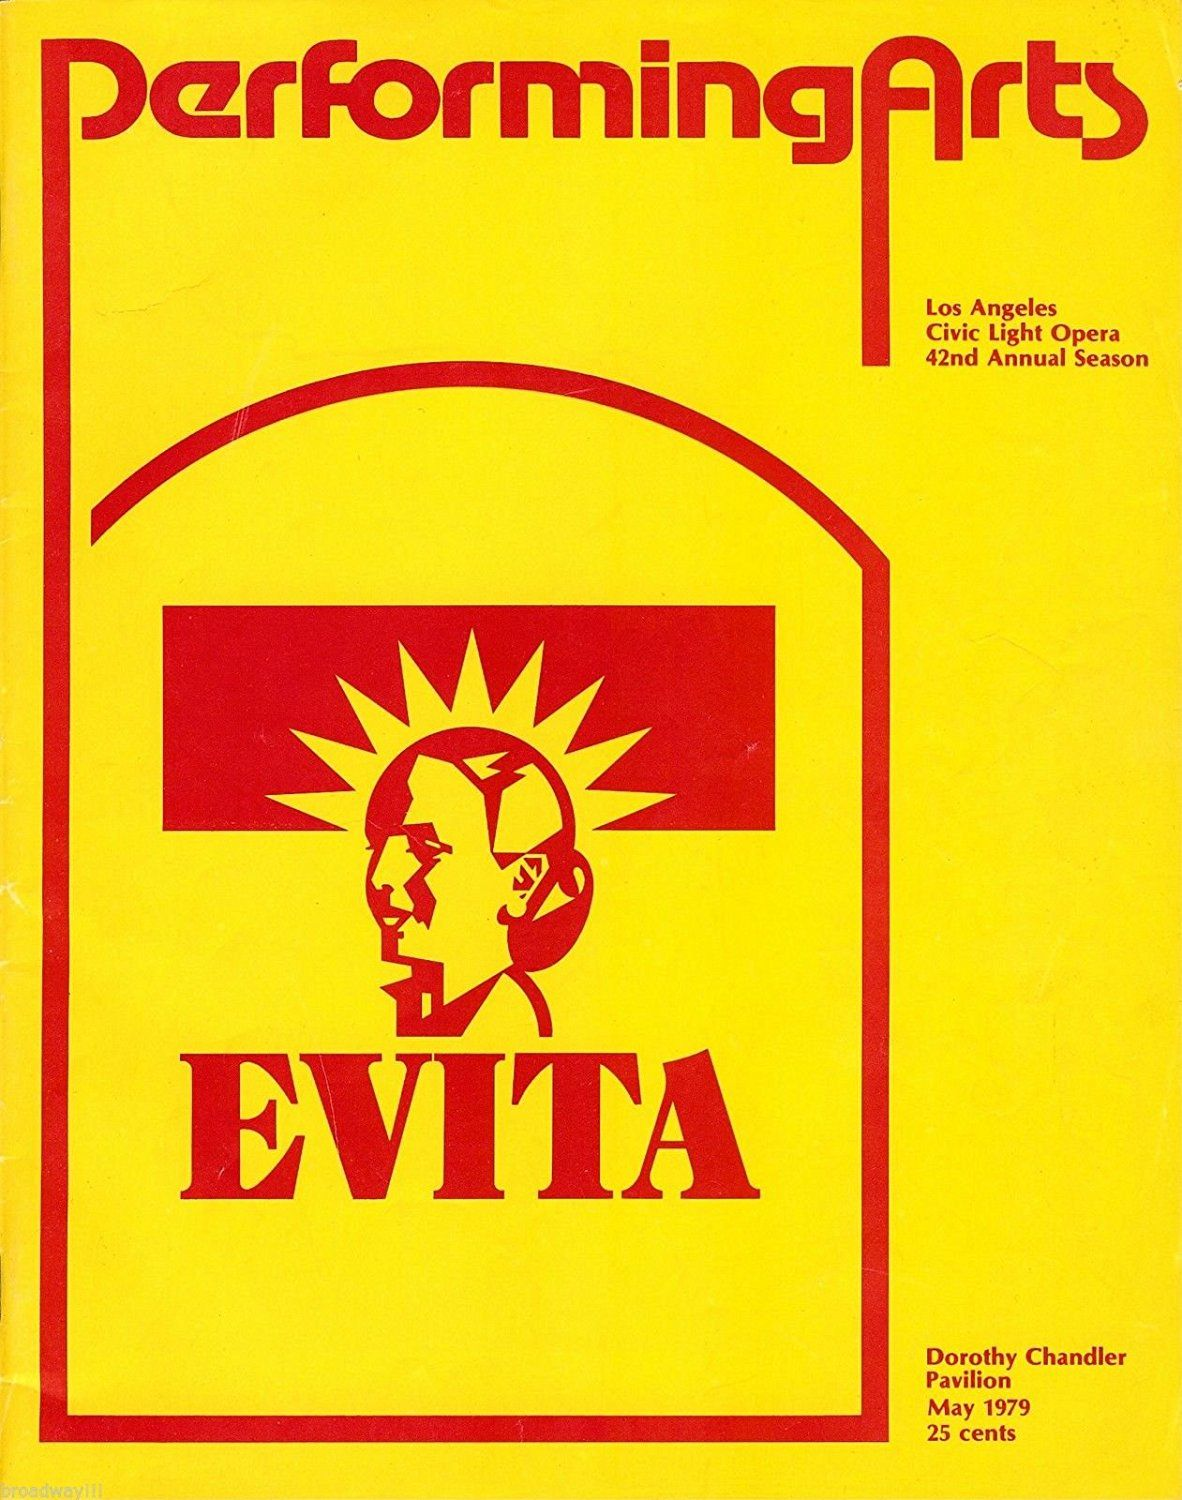 Los Angeles Ca Premiere Of Evita At The Dorothy Chandler Pavilion Located At 135 N Grand Avenue At The Music Center Patti Lupone Mandy Patinkin Evita